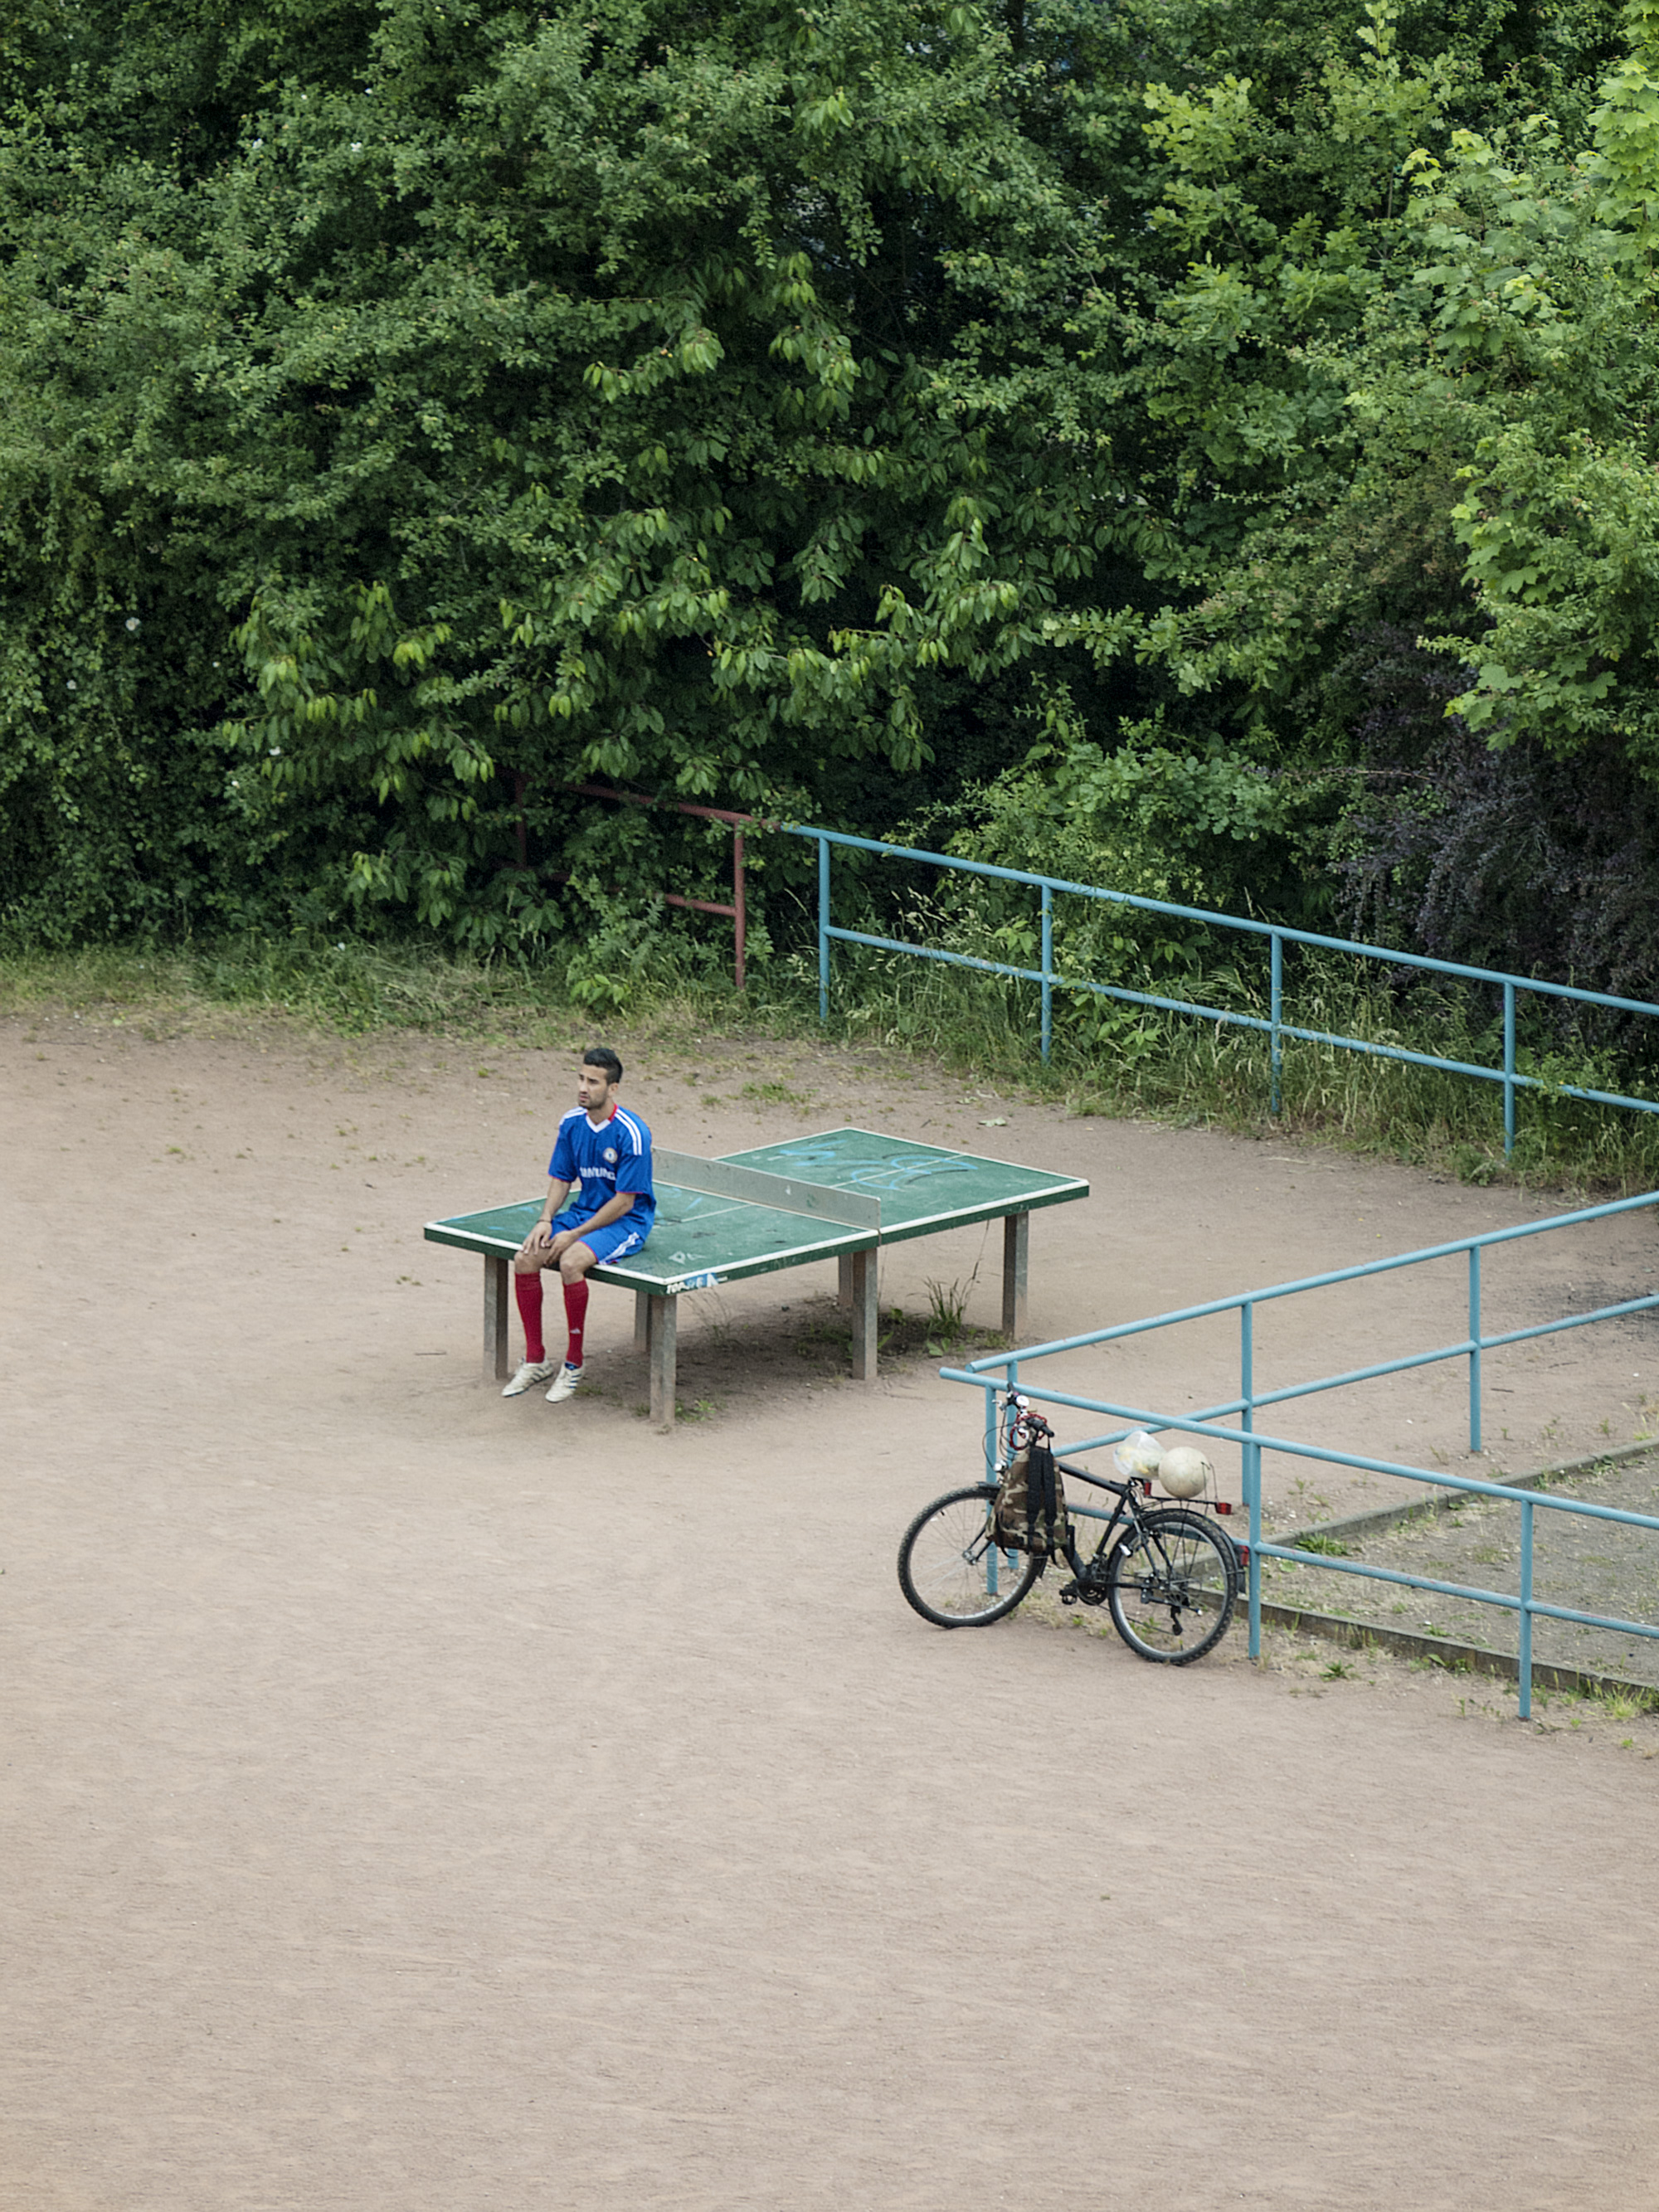 The Diverse Daily Life of a Ping Pong Table in Germany Photographed by Tomiyasu Hayahisa (11 pics)